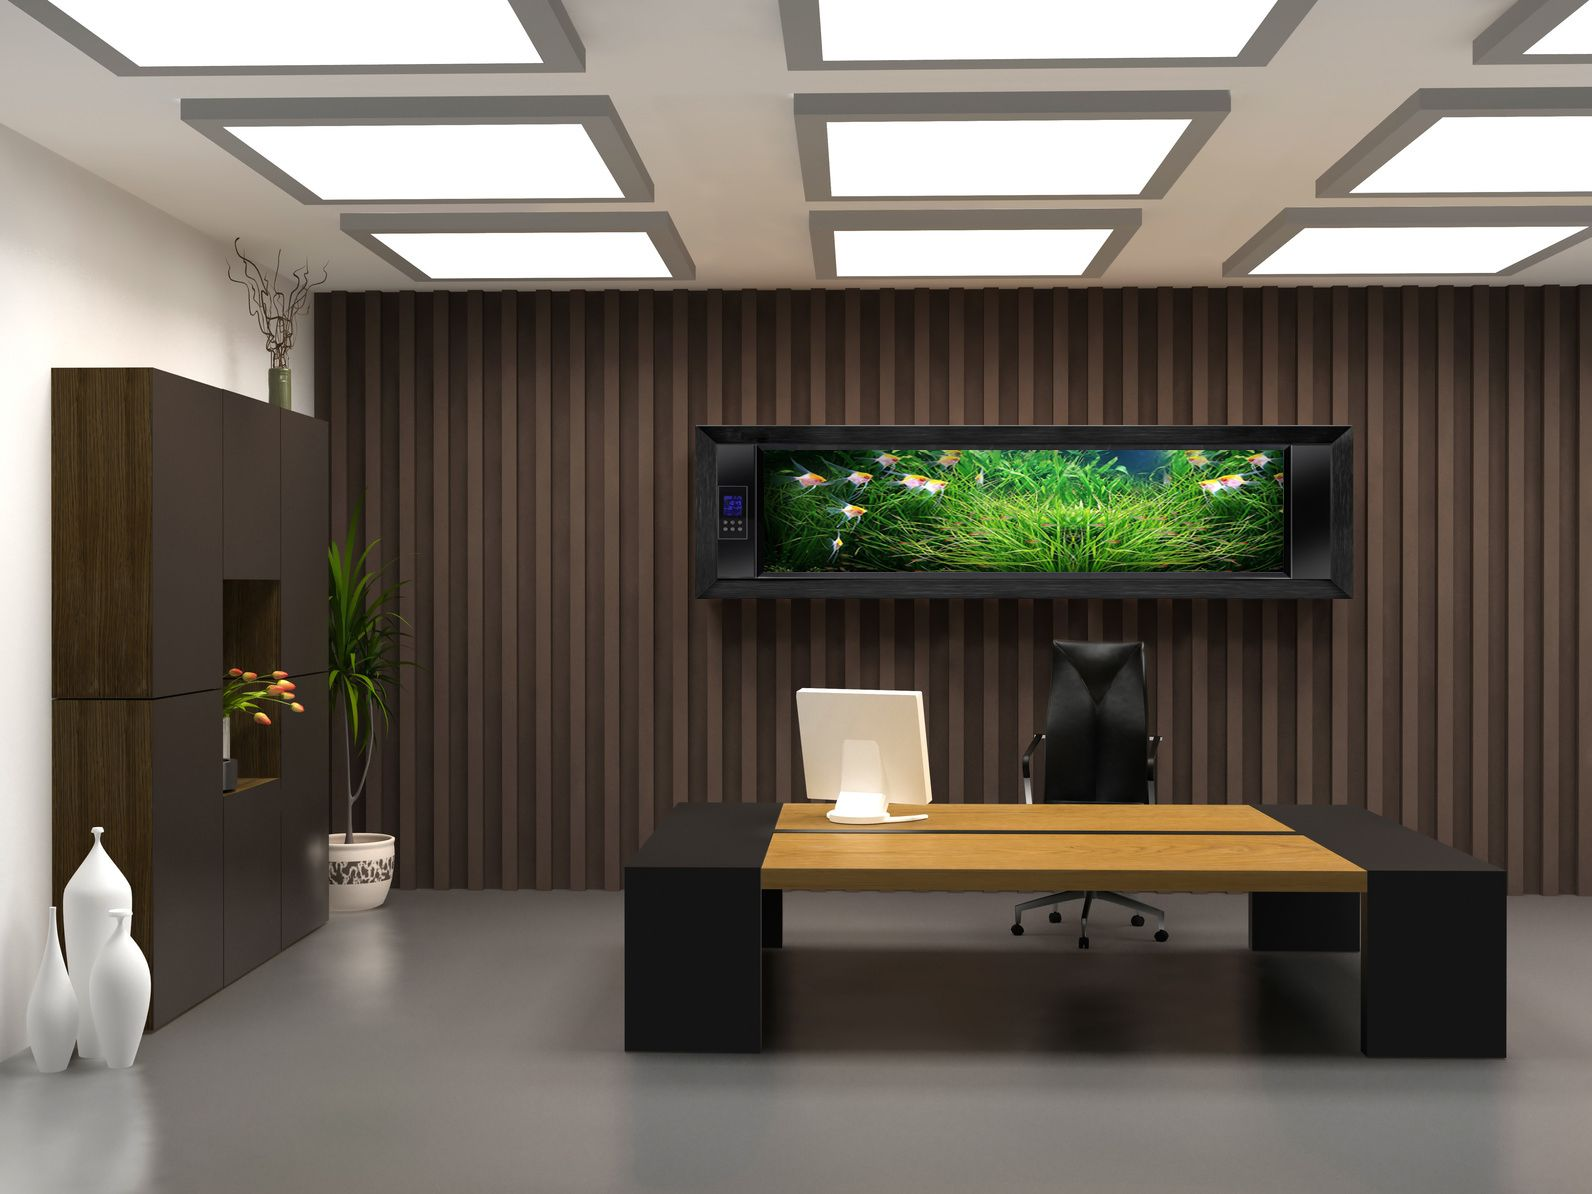 Office U0026 Workspace, Exclusive Large Space Office Room Design Ideas With  Wonderful Black Mixed Bright Brown Office Desk And Comfortable Black Arm  Chair Also ...